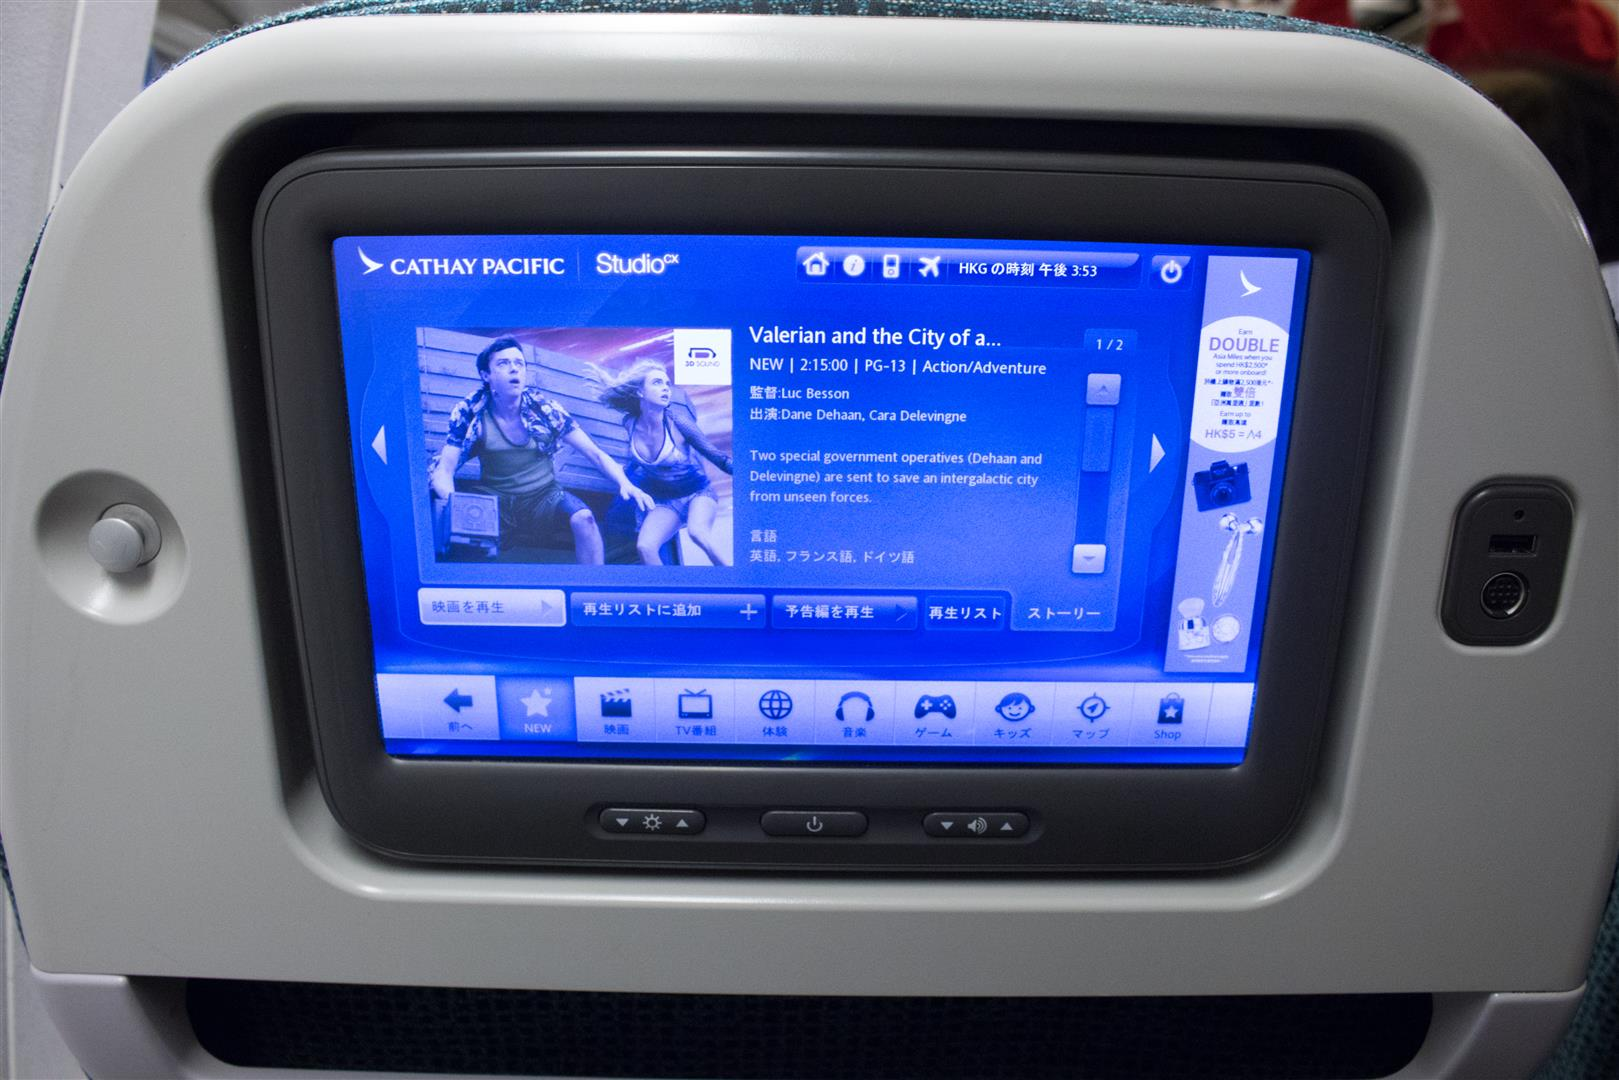 The inflight Entertainment on the Cathay Pacific B777-300ER